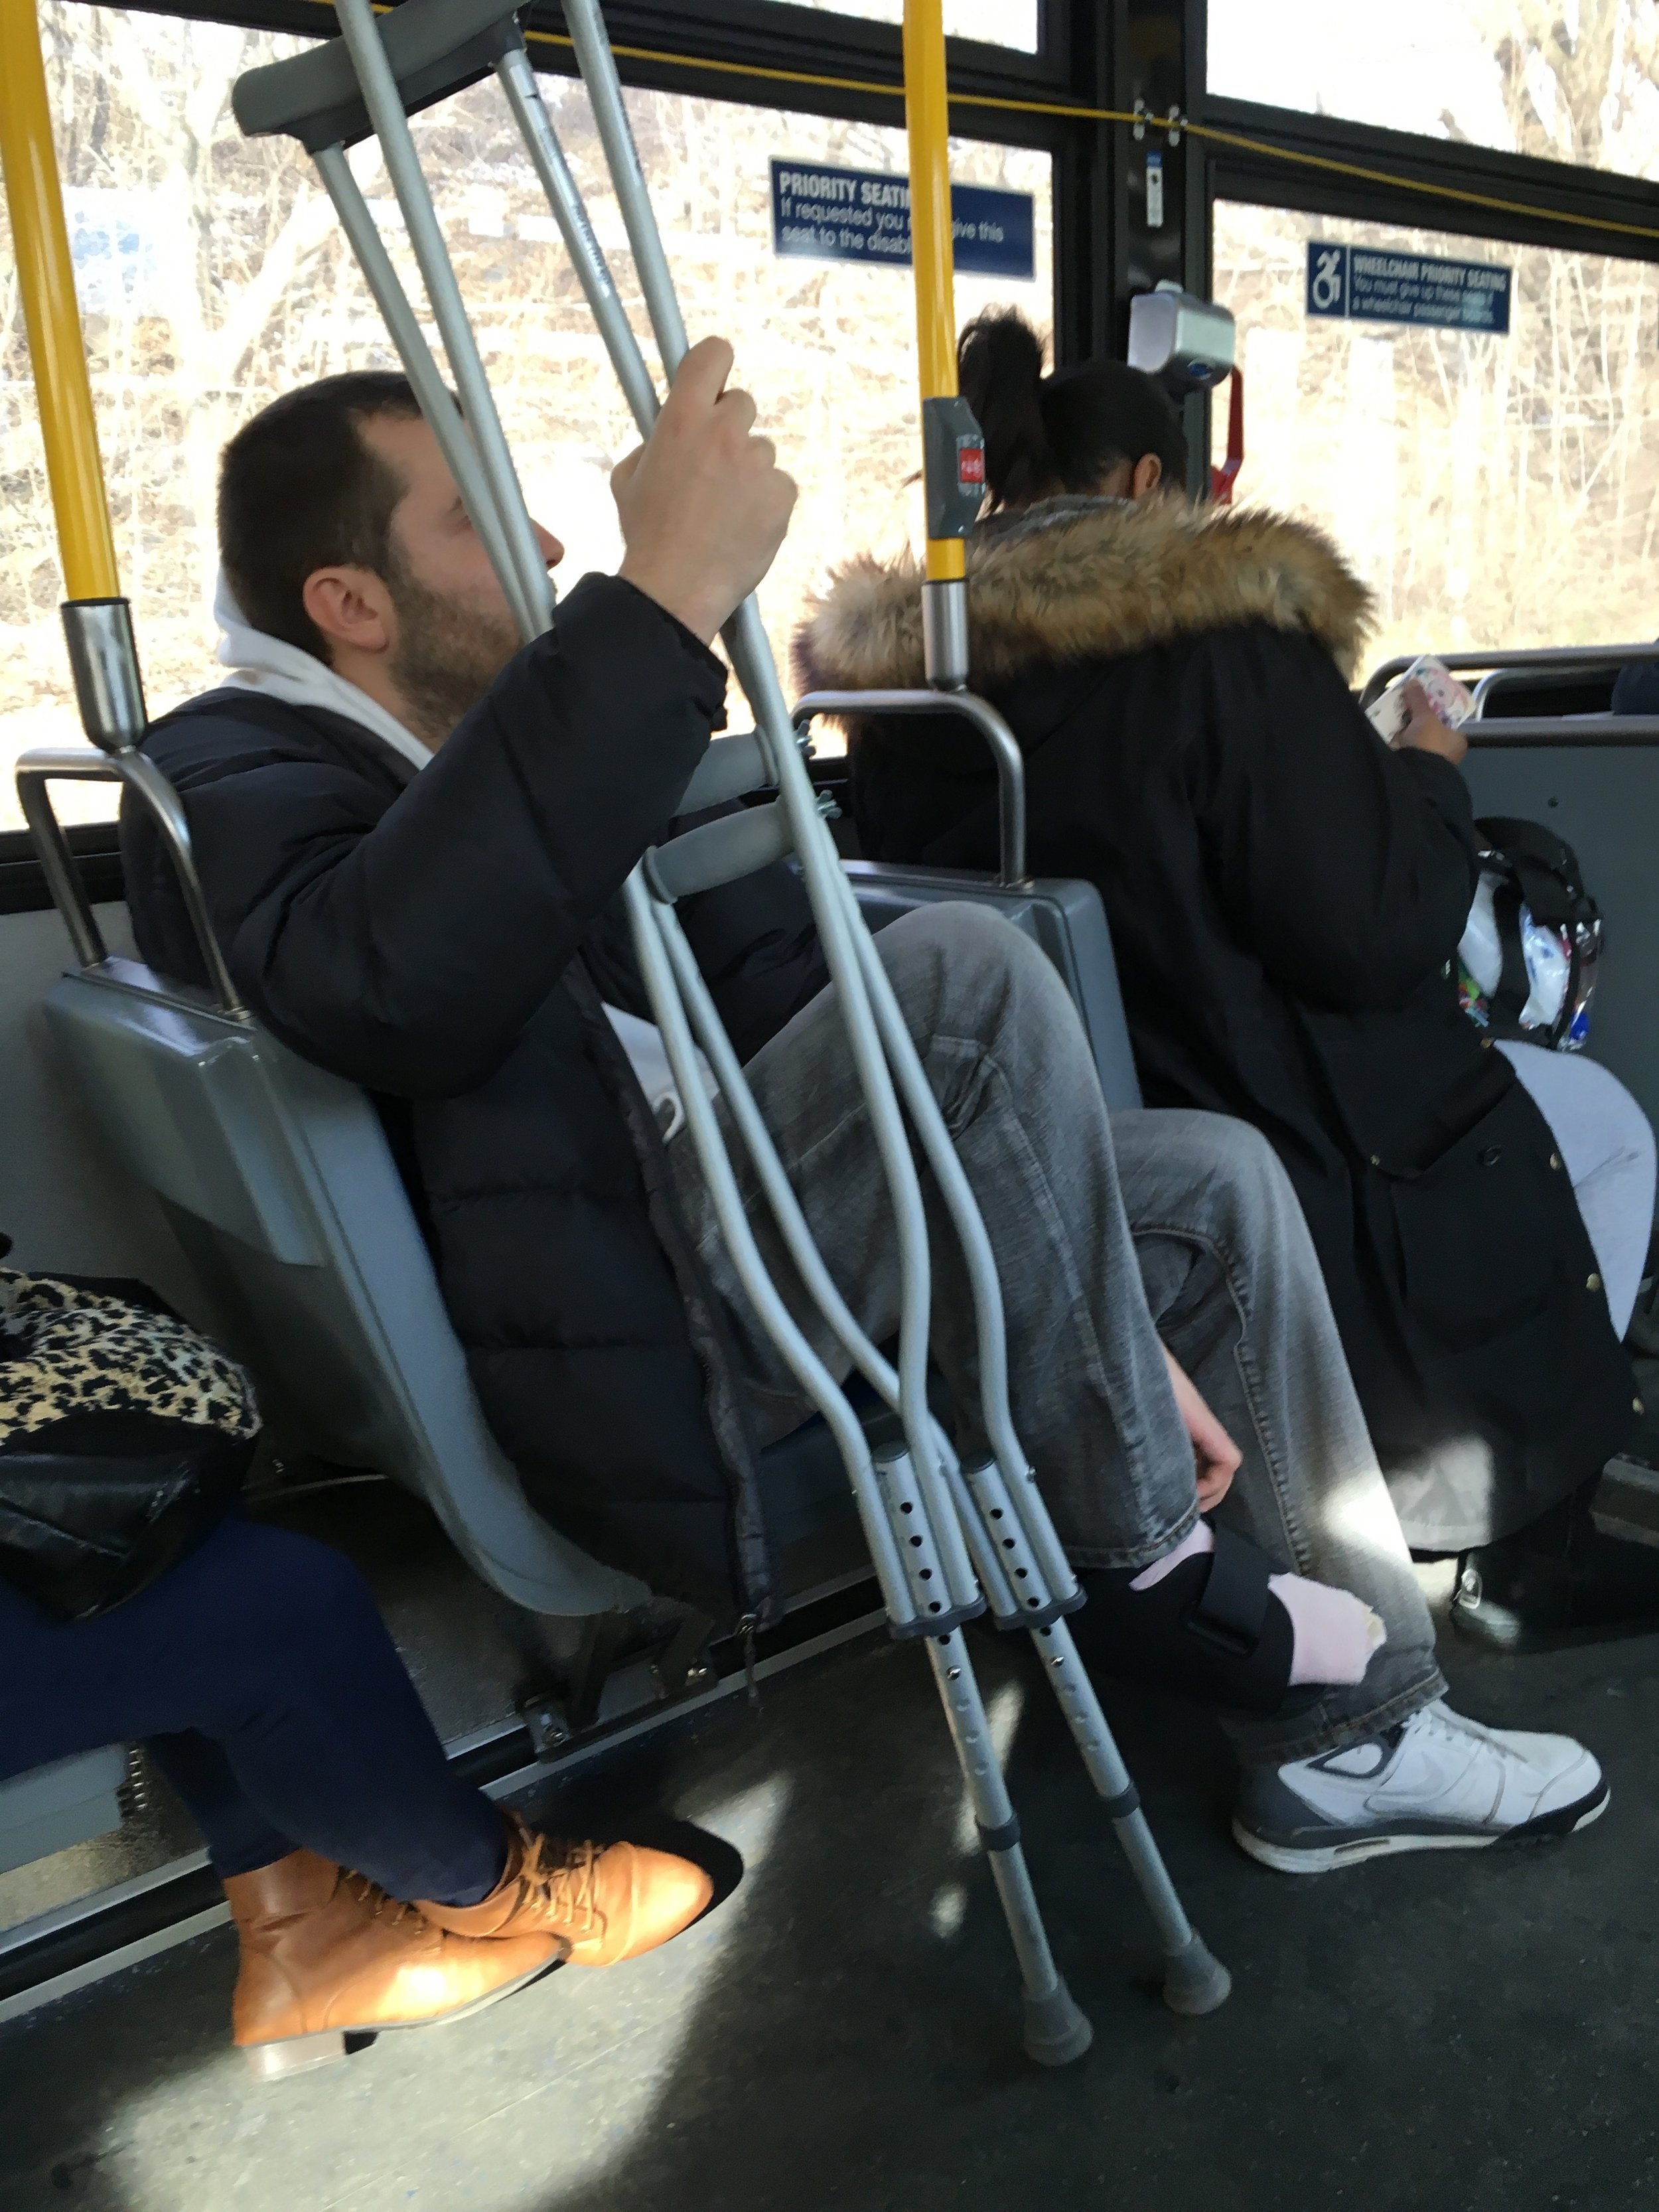 Anton on the bus to Rikers.